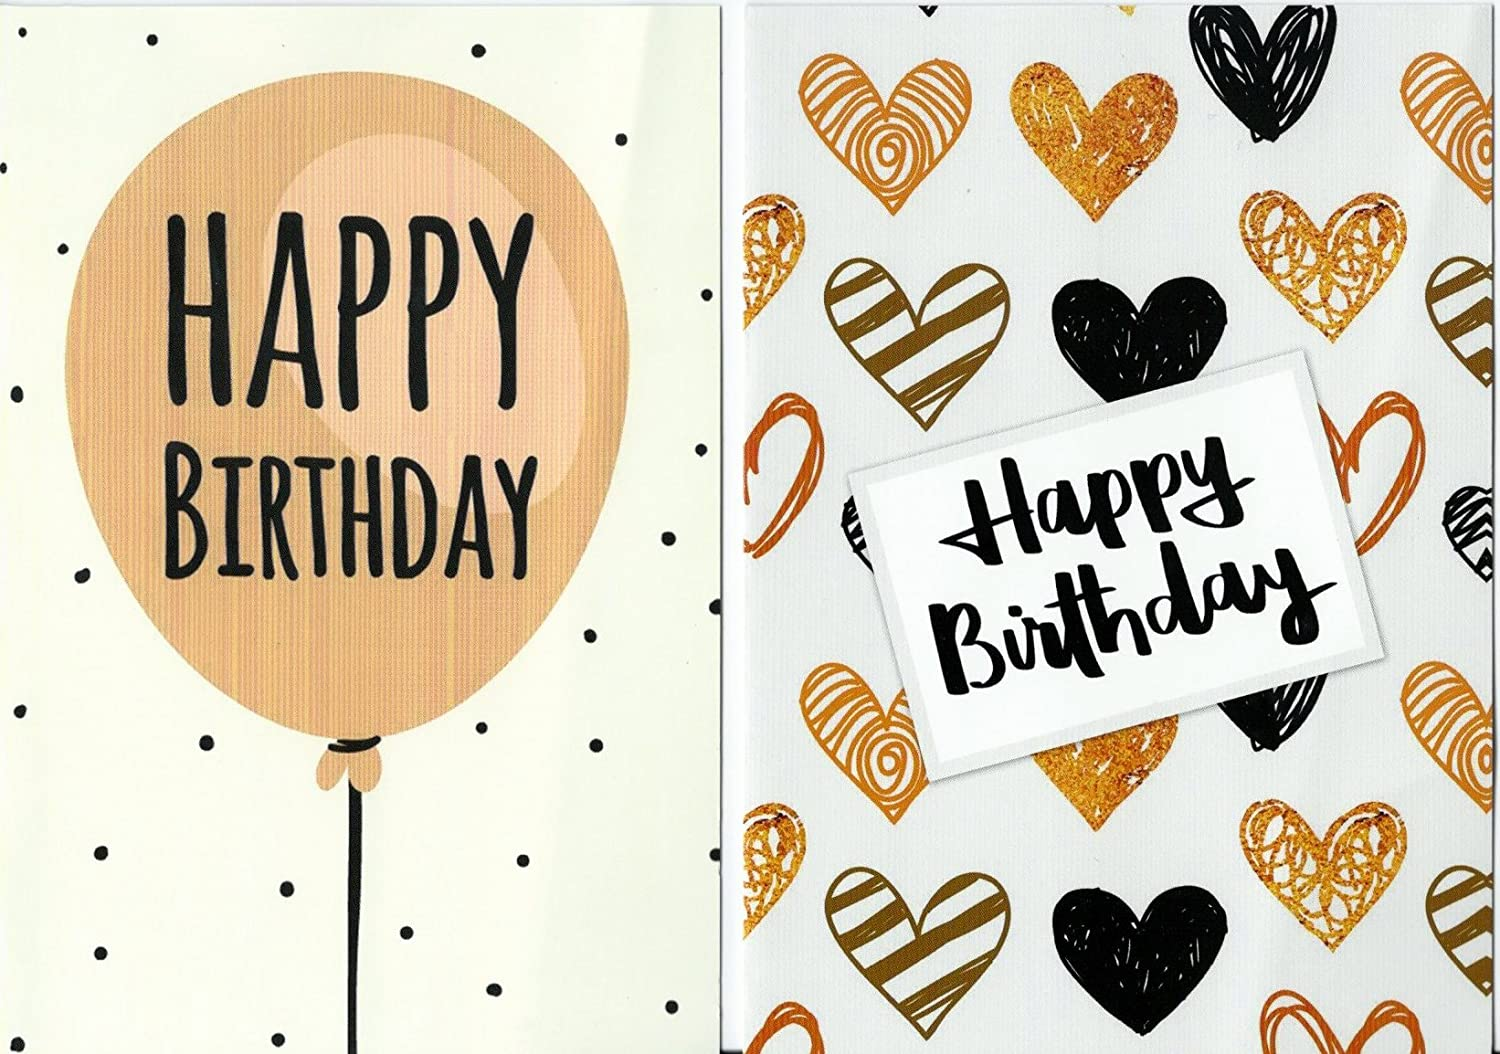 Pack Of 10 Budget Birthday Cards Modern Designs Envelopes By Greetingles Made In UK Amazoncouk Office Products